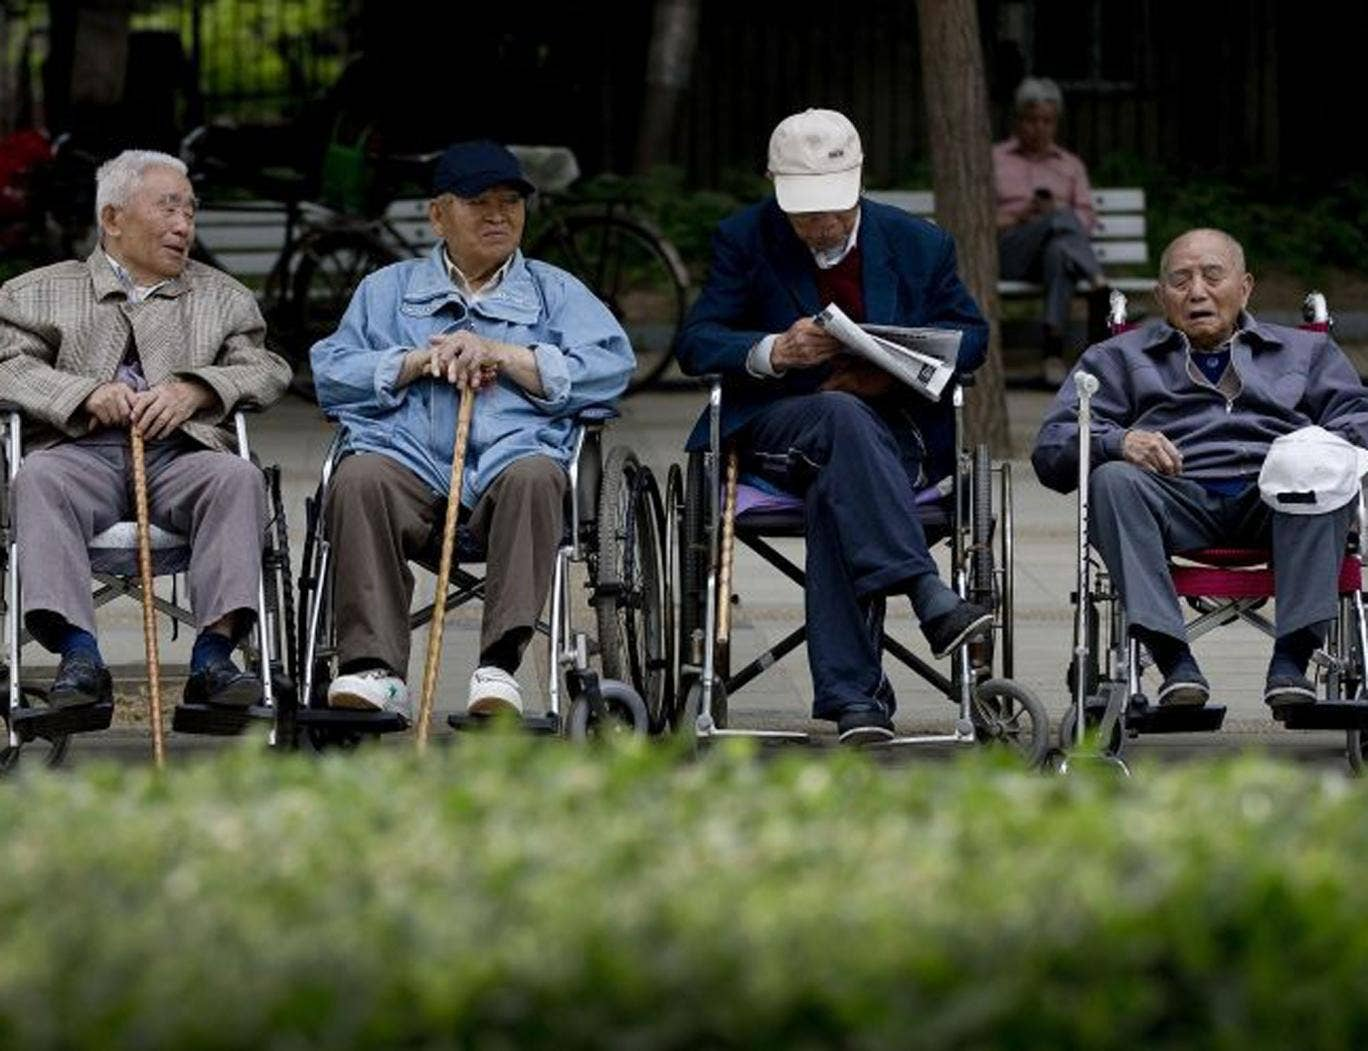 China has 193 million people aged 60 or above